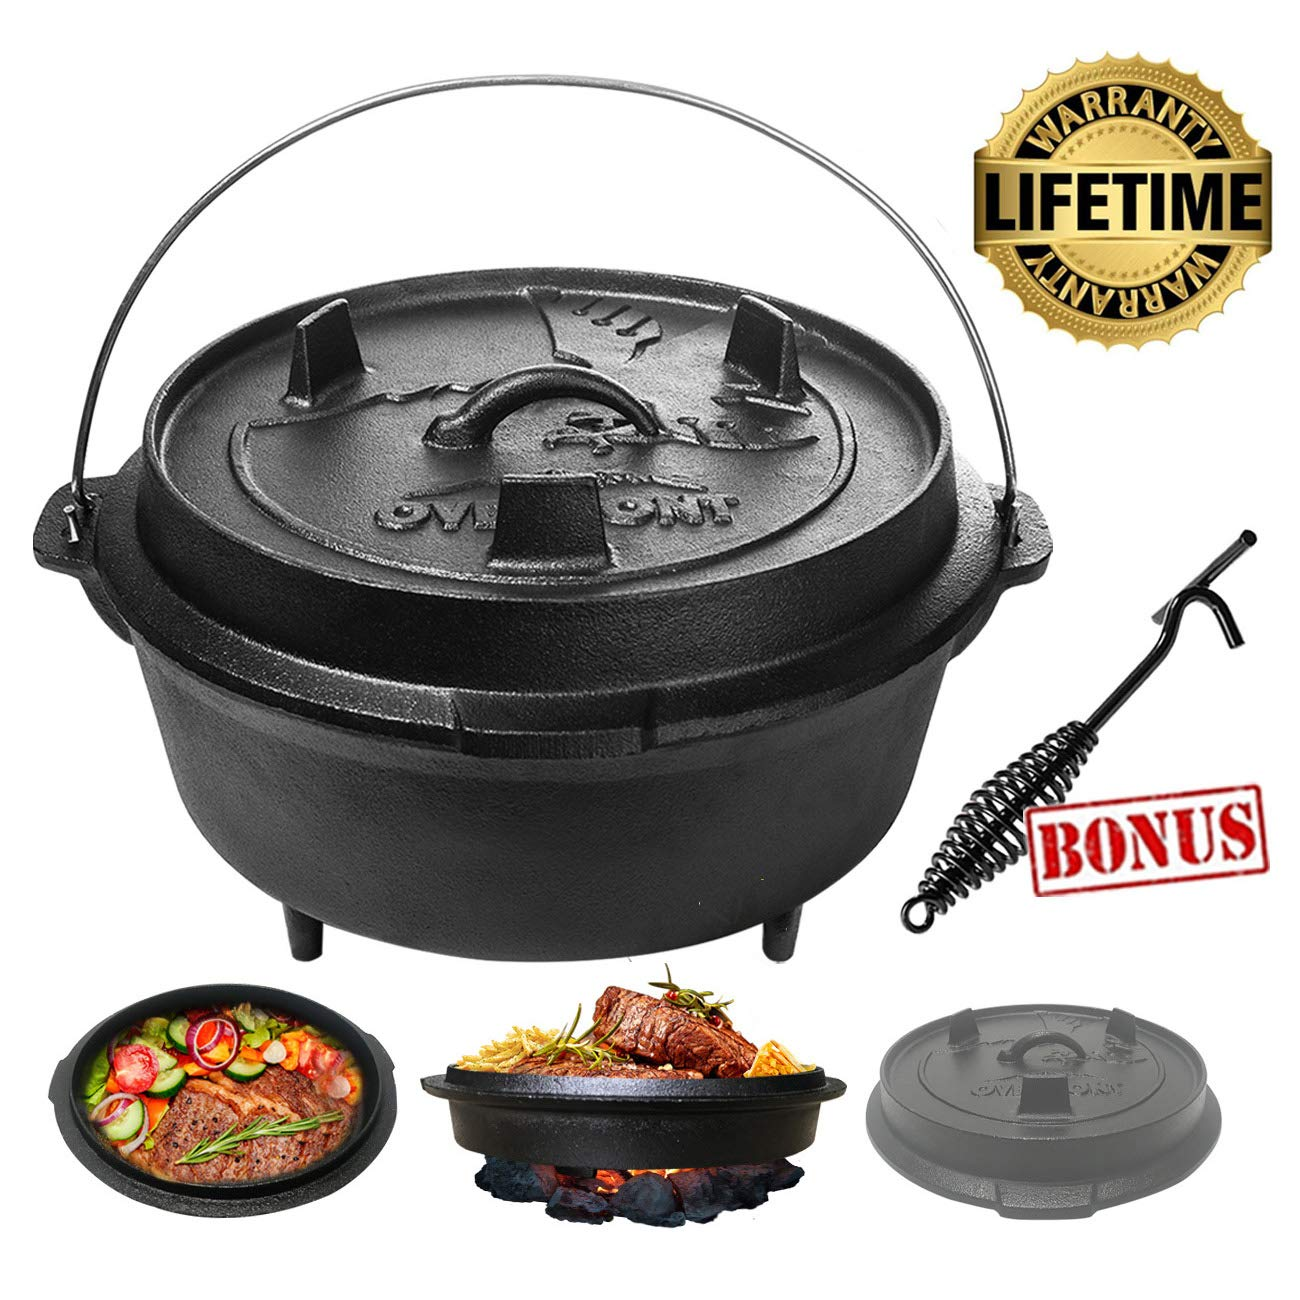 Overmont 6 Quart All-Round Dutch Oven【Dual Function Lid Skillet】【with Lid Lifter】【Pre Seasoned】 Cast Iron Dutch Oven Pot Handle for Camping Cooking BBQ Baking